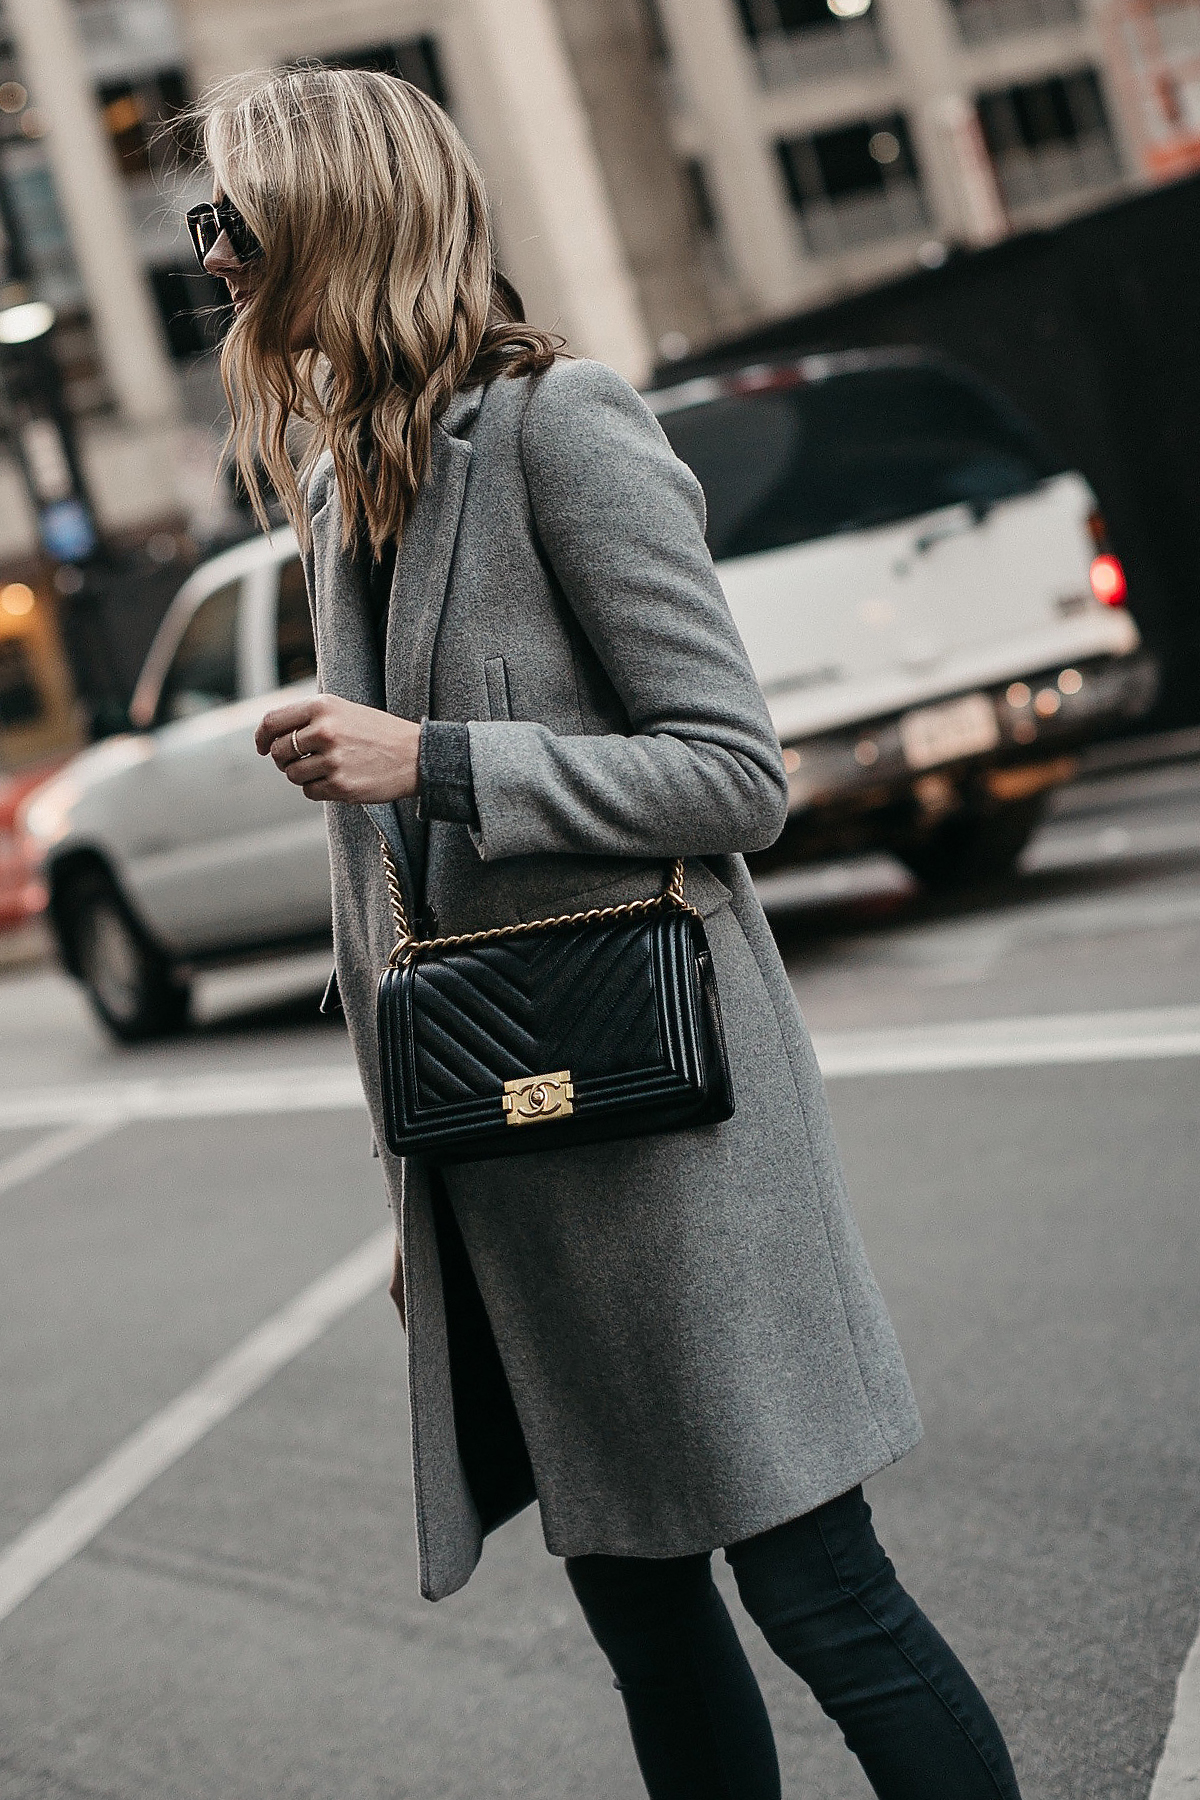 Blonde Woman Wearing Grey Coat Grey Skinny Jeans Black Chanel Boy Bag Fashion Jackson Dallas Blogger Fashion Blogger Street Style